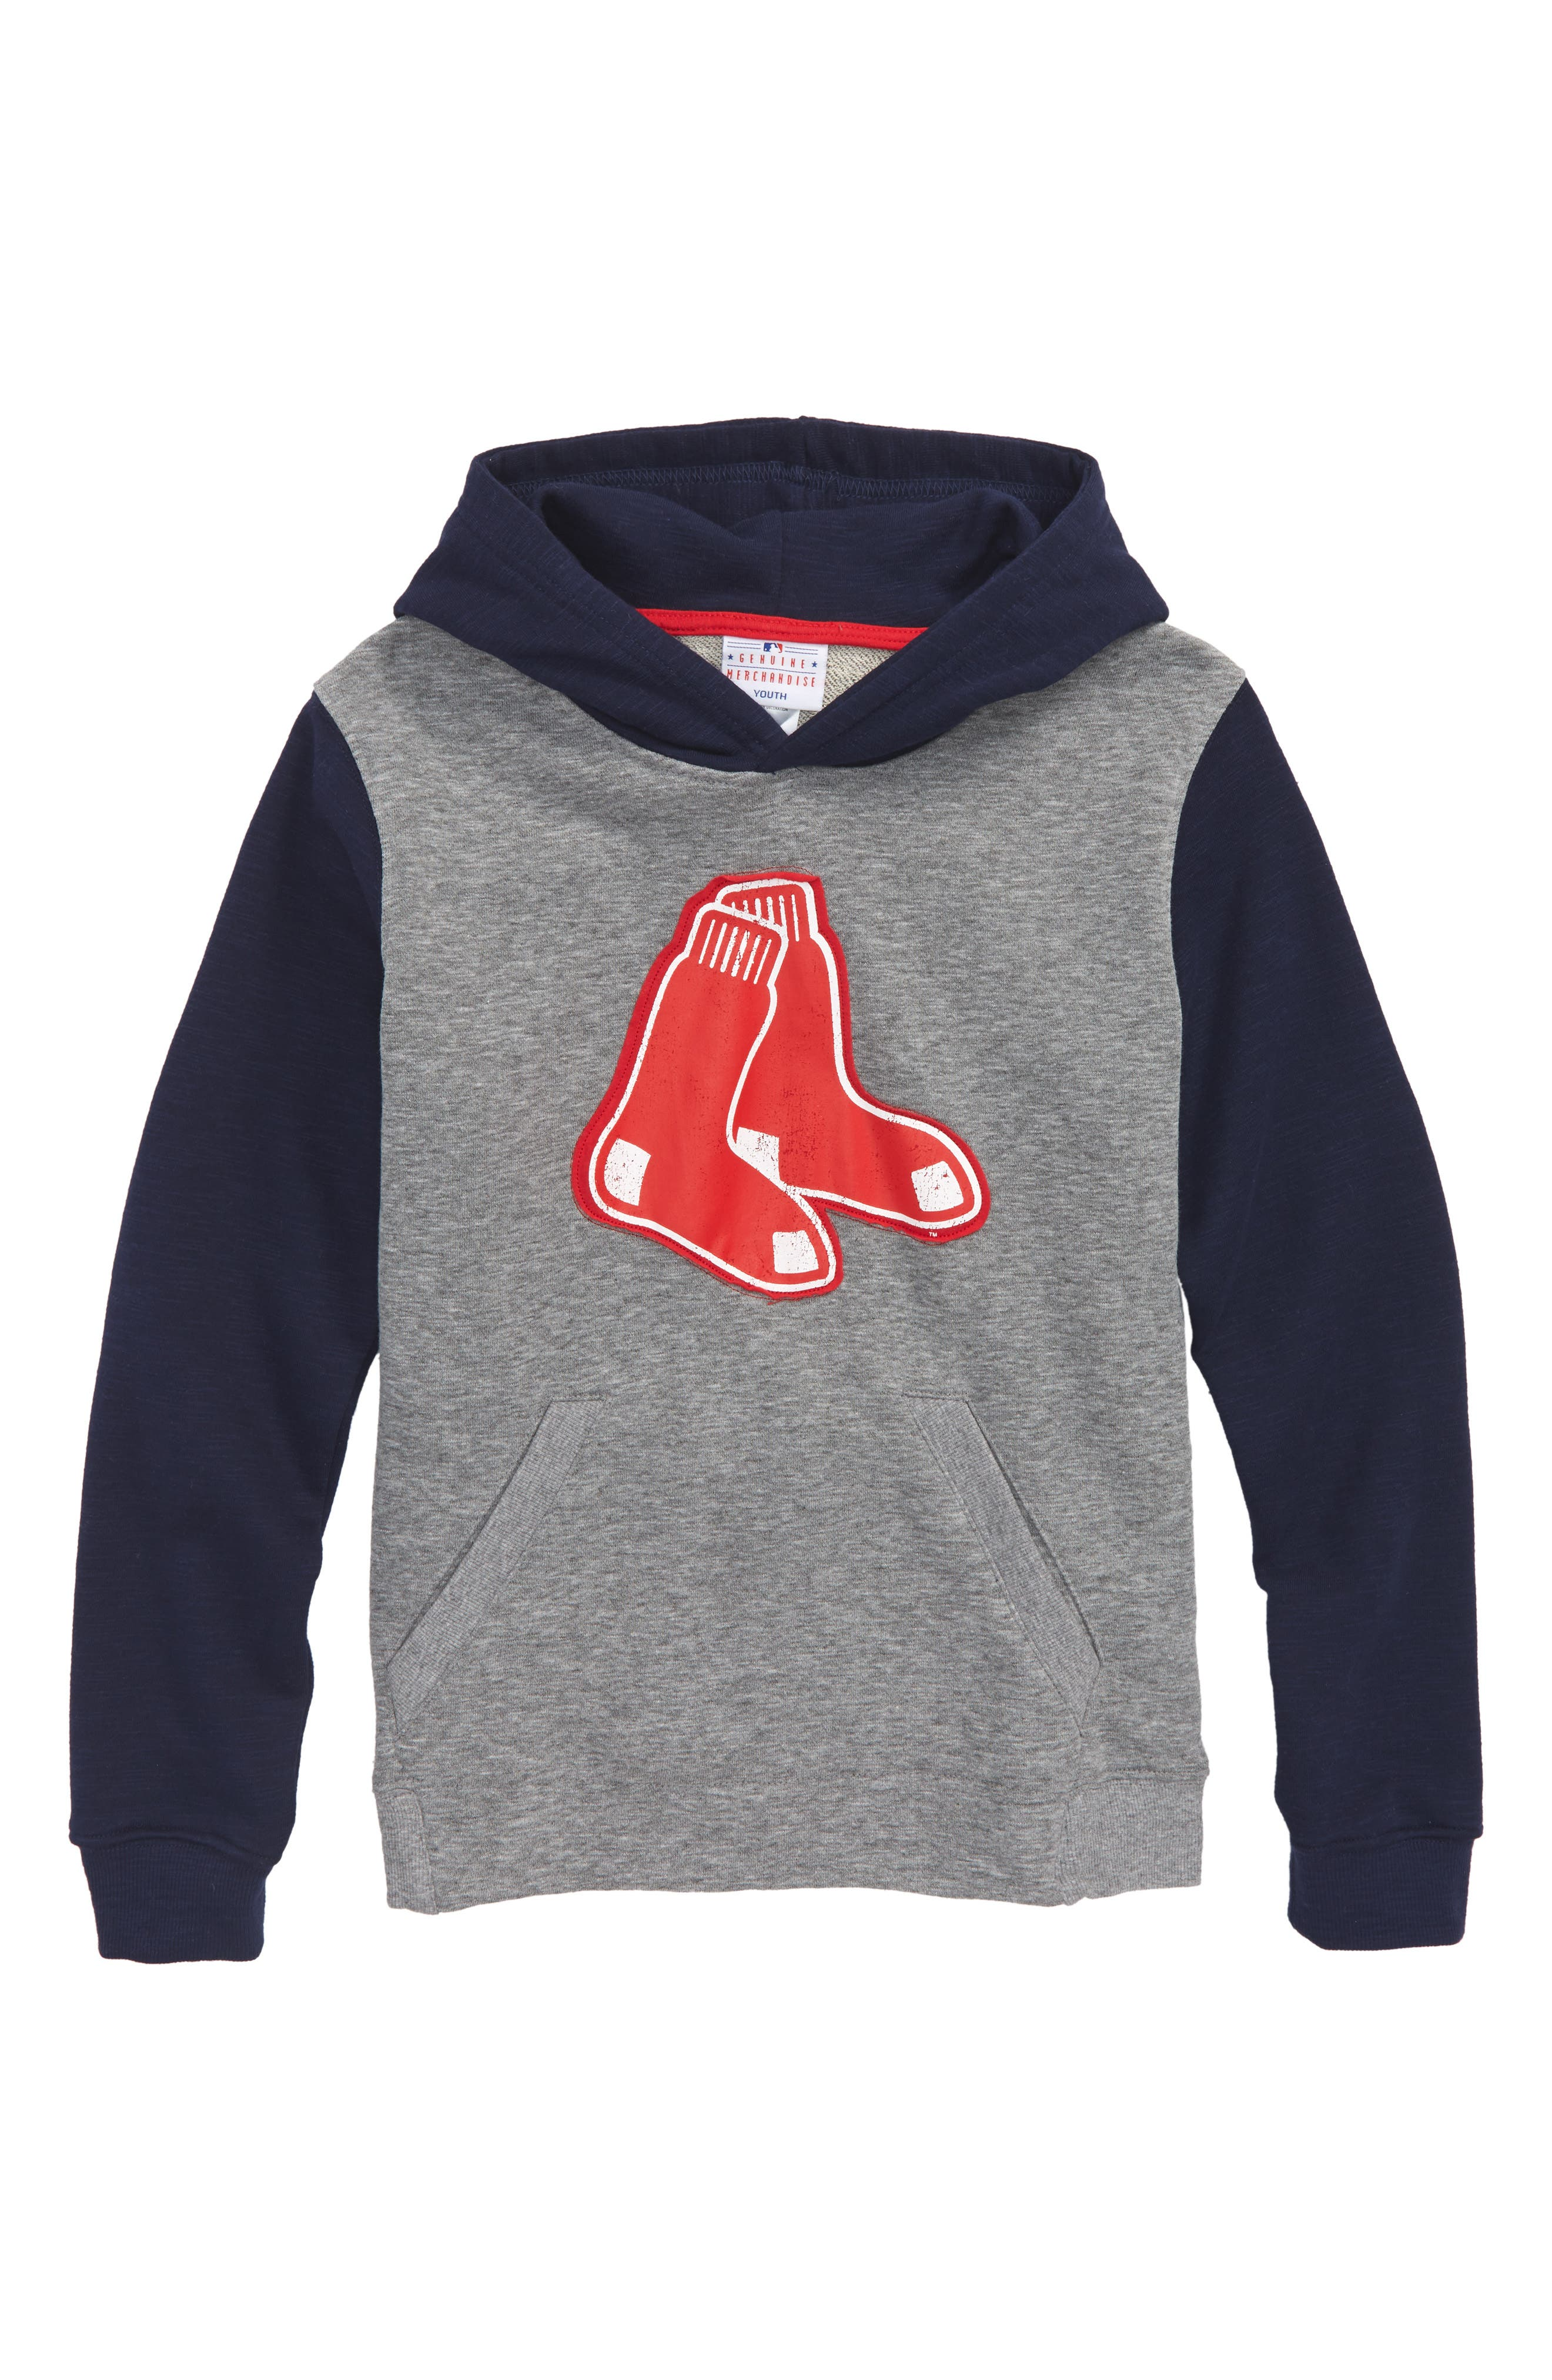 New Beginnings - Boston Red Sox Pullover Hoodie,                         Main,                         color, 020